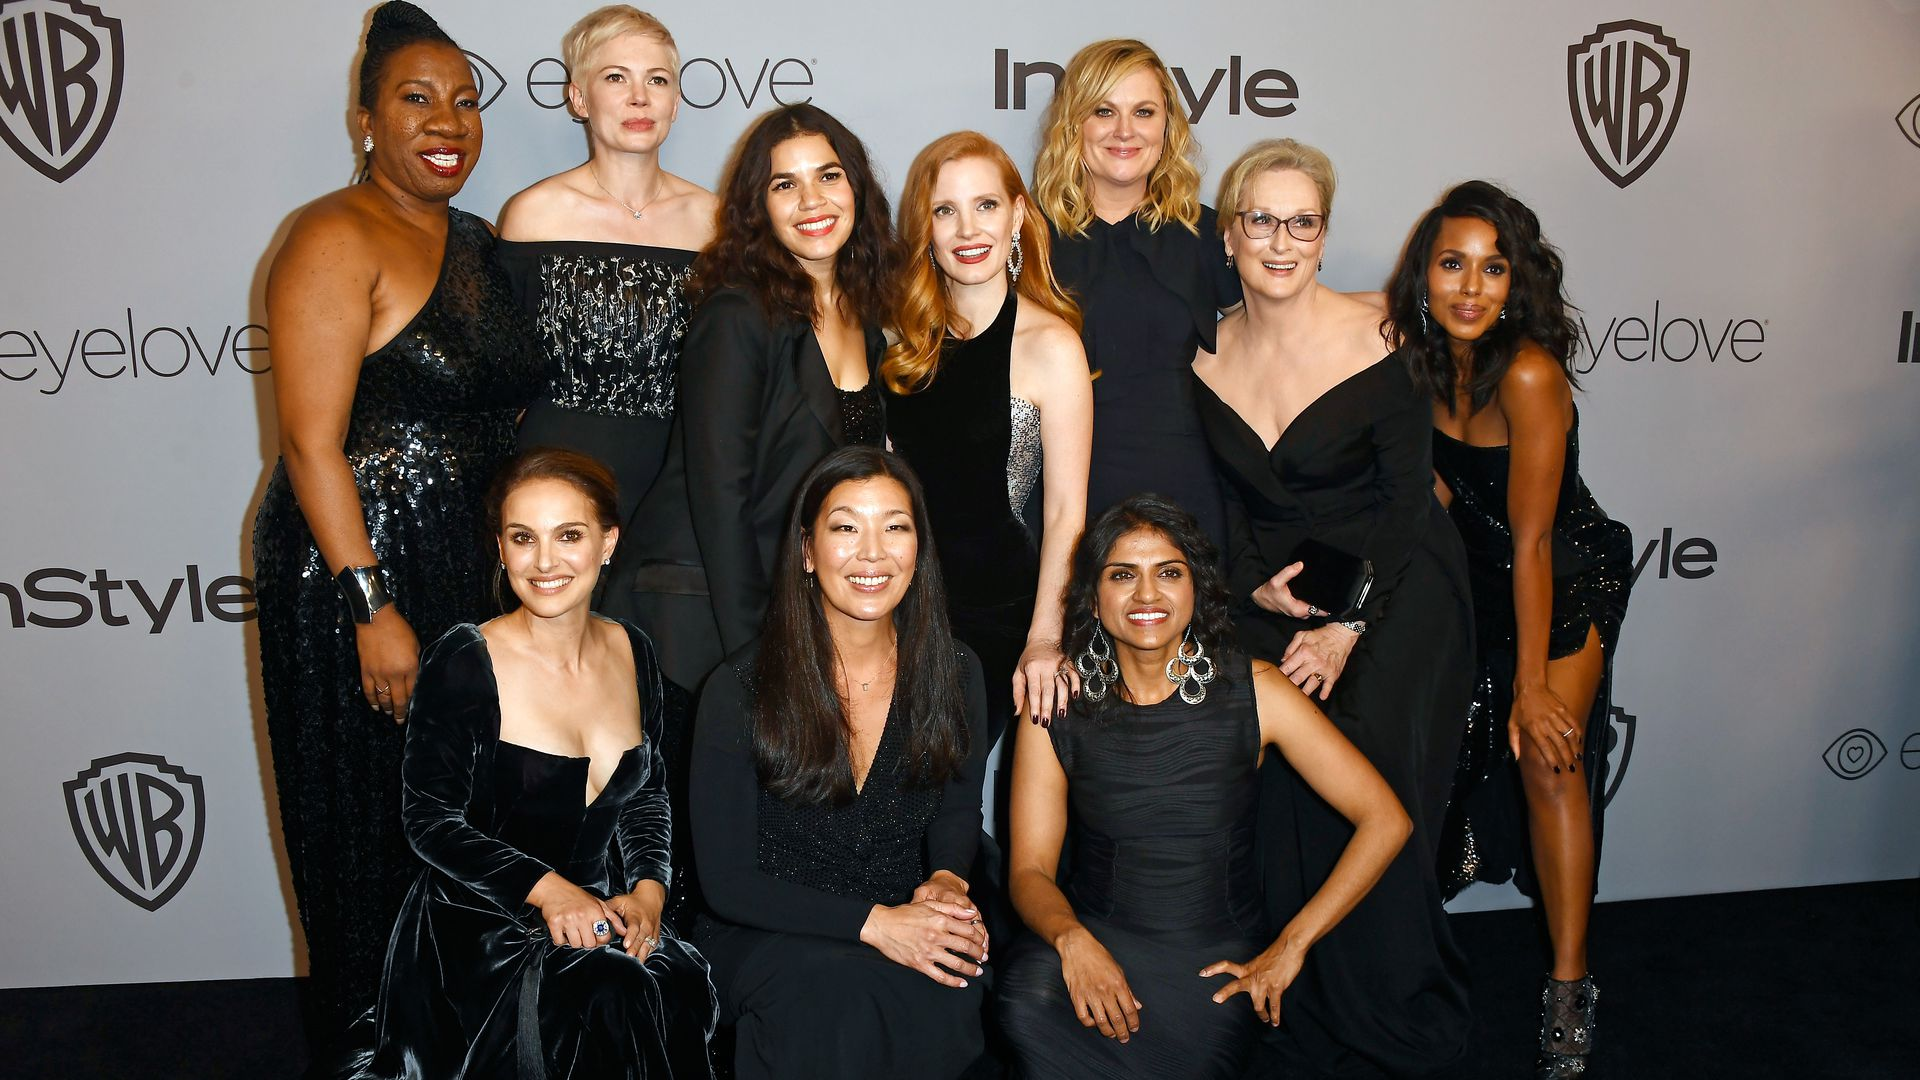 Photo of actresses at the Golden Globes wearing all black.